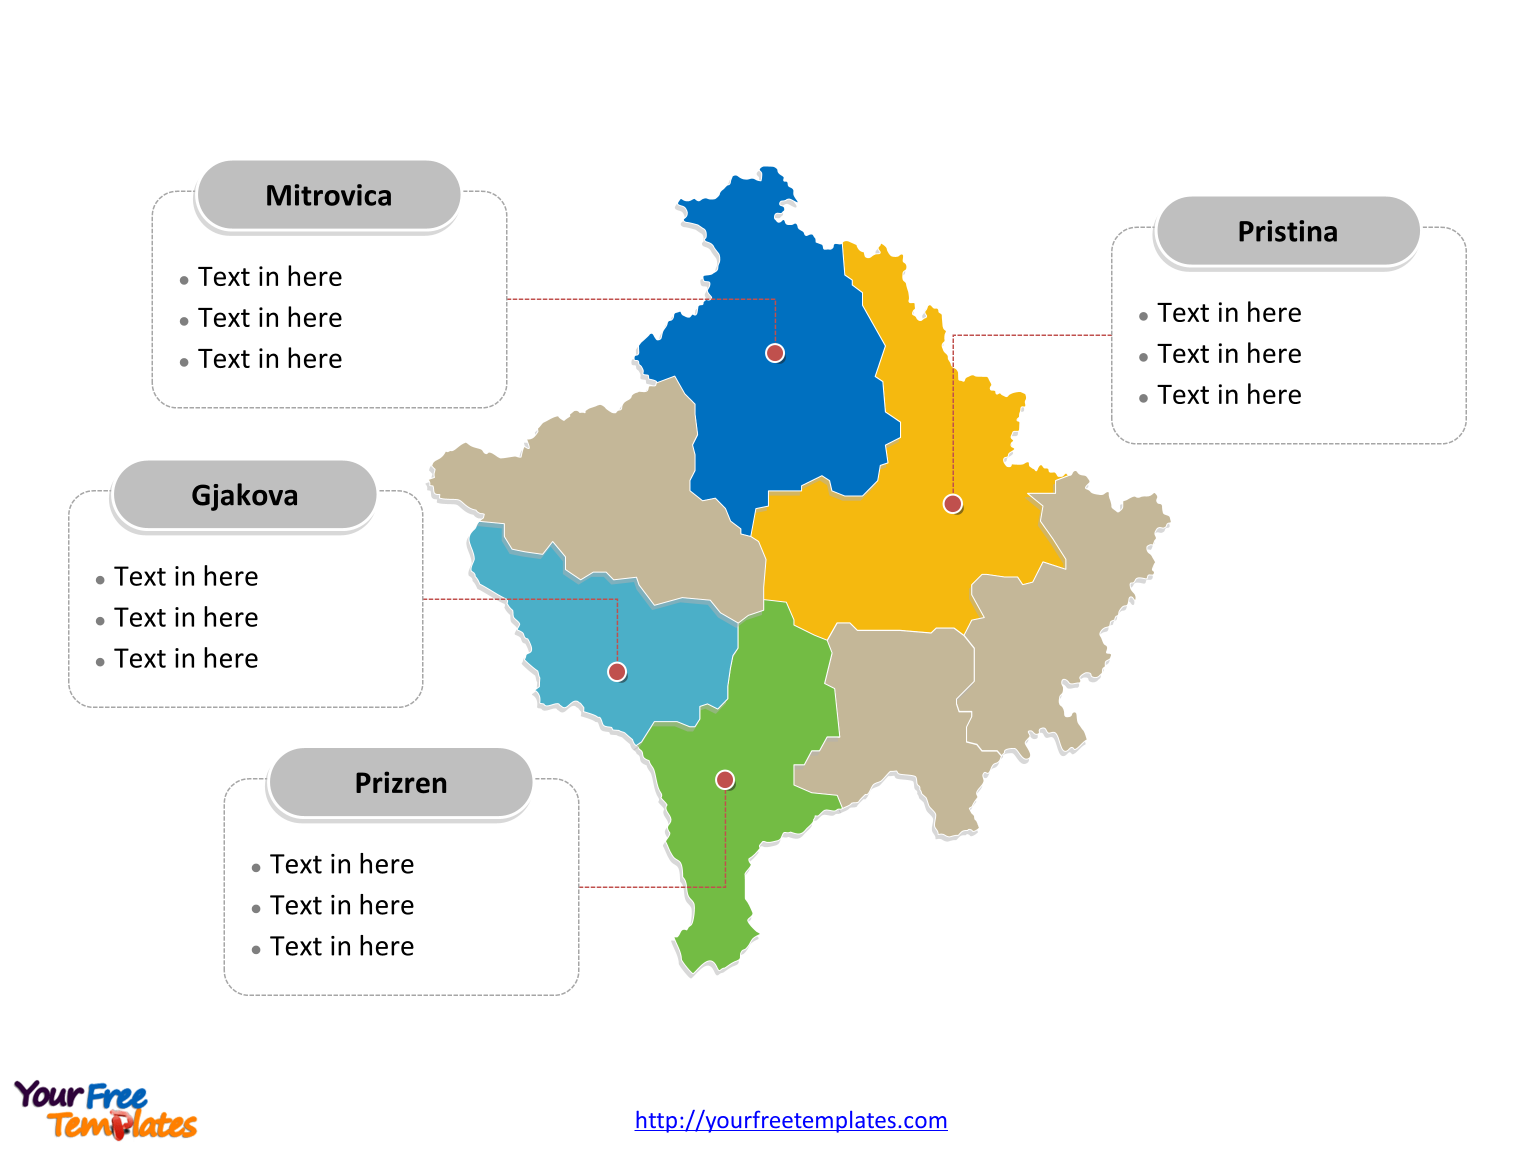 Kosovo political map labeled with major districts